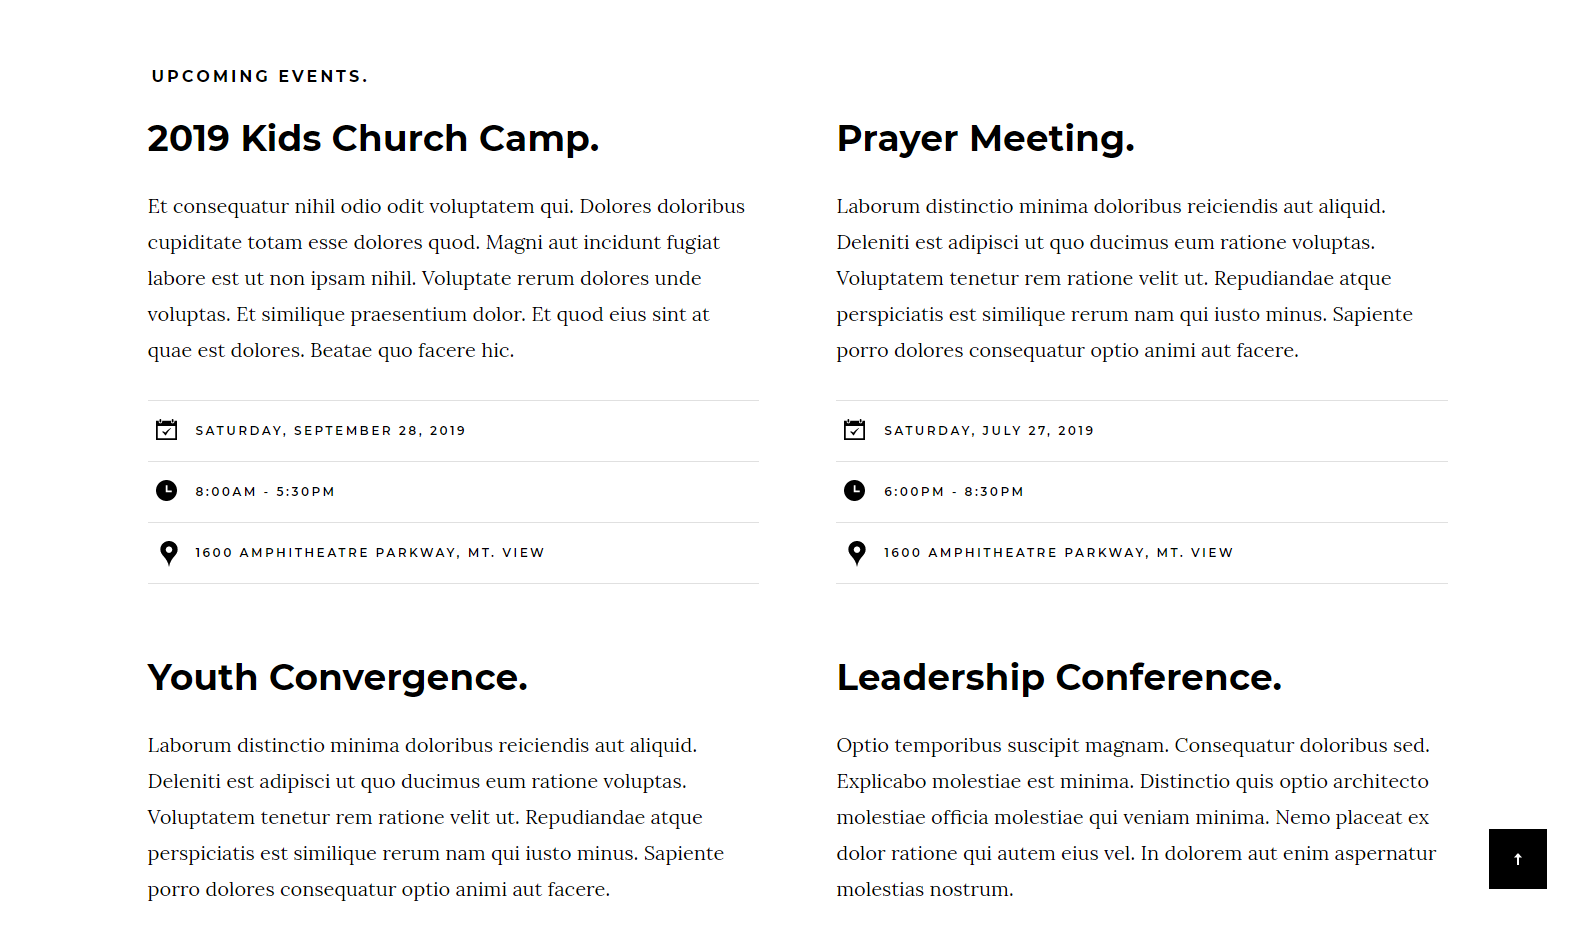 Hesed: a Clean and Modern Free Church Website Template